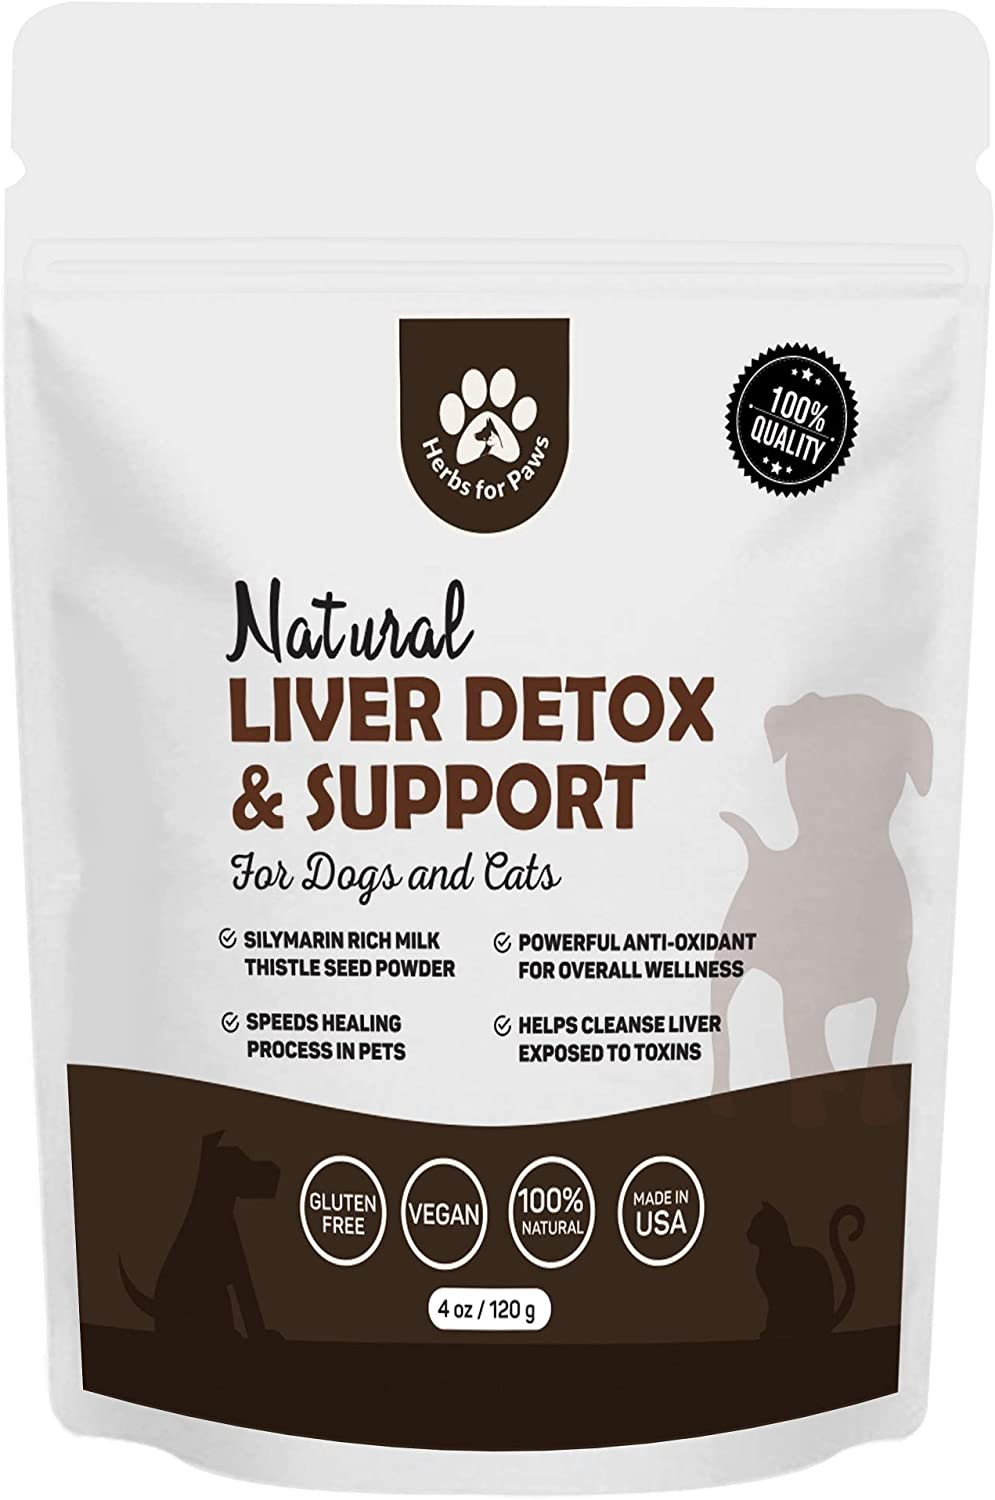 Dog Liver Detox Support, Milk Thistle for Dogs (120 GMS), Canine and cat Liver Support Powder Supplement Without Capsules, Pills - 4oz Bag